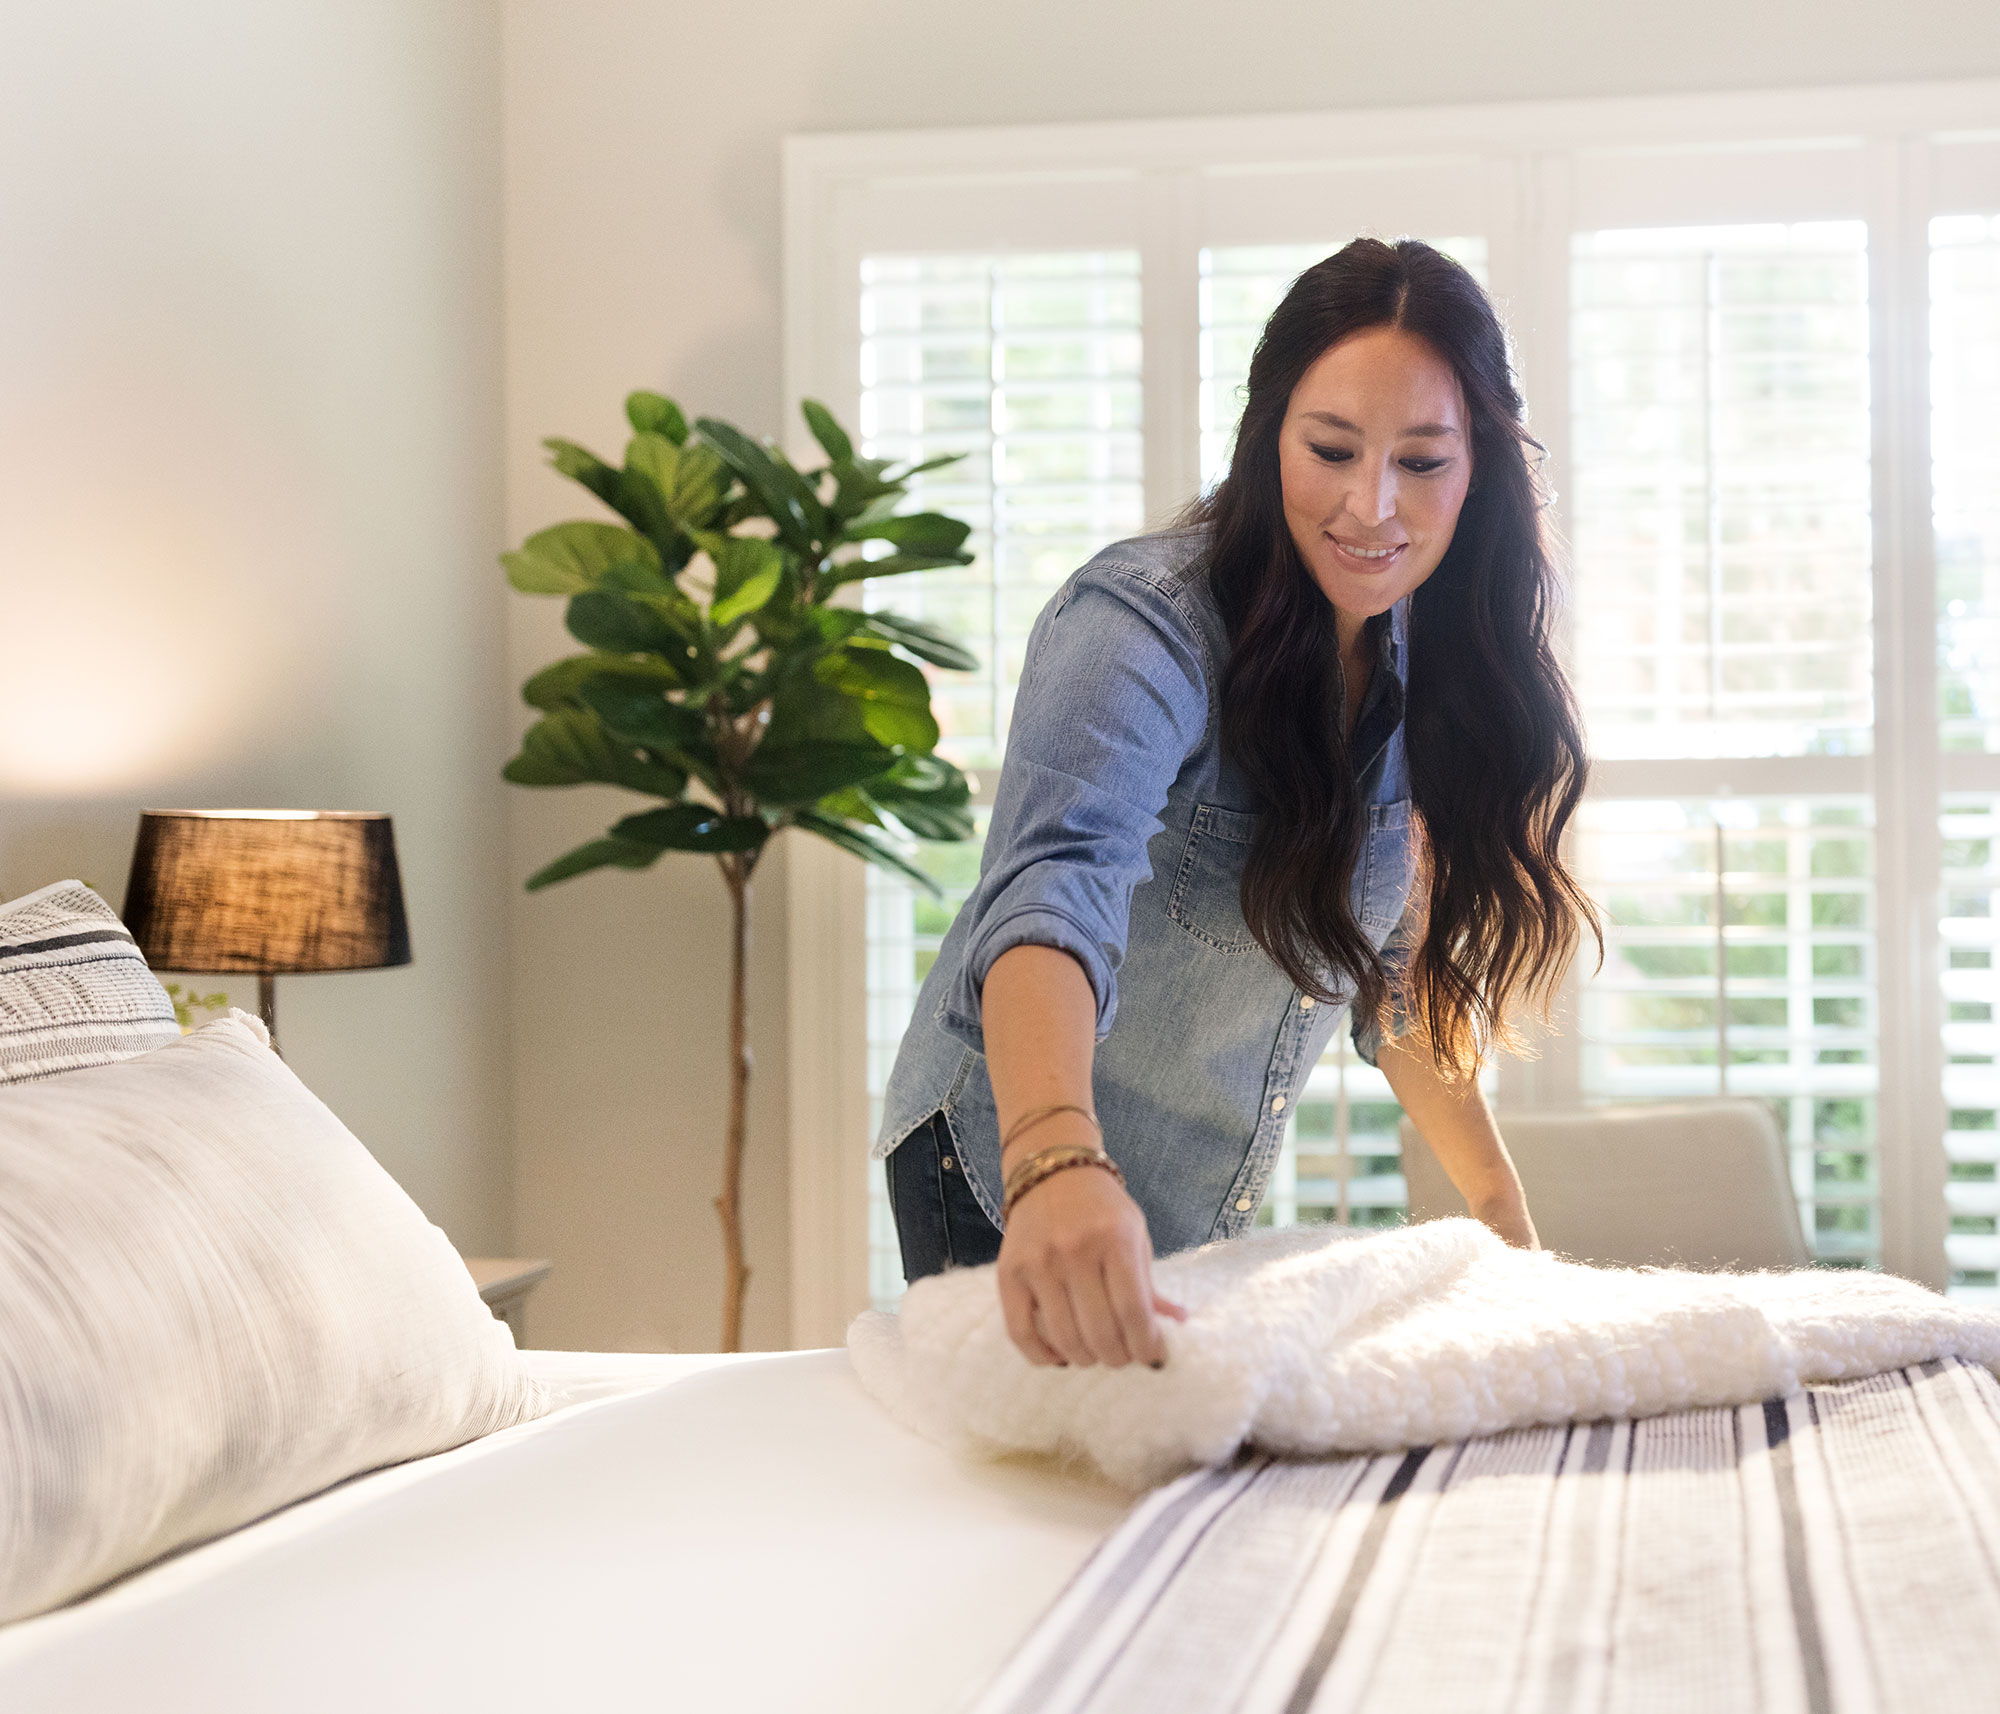 Joanna Gaines Is Launching a Bedding Line at Target! Get a Sneak Peek at Her New Collection joanna-gaines-1-1